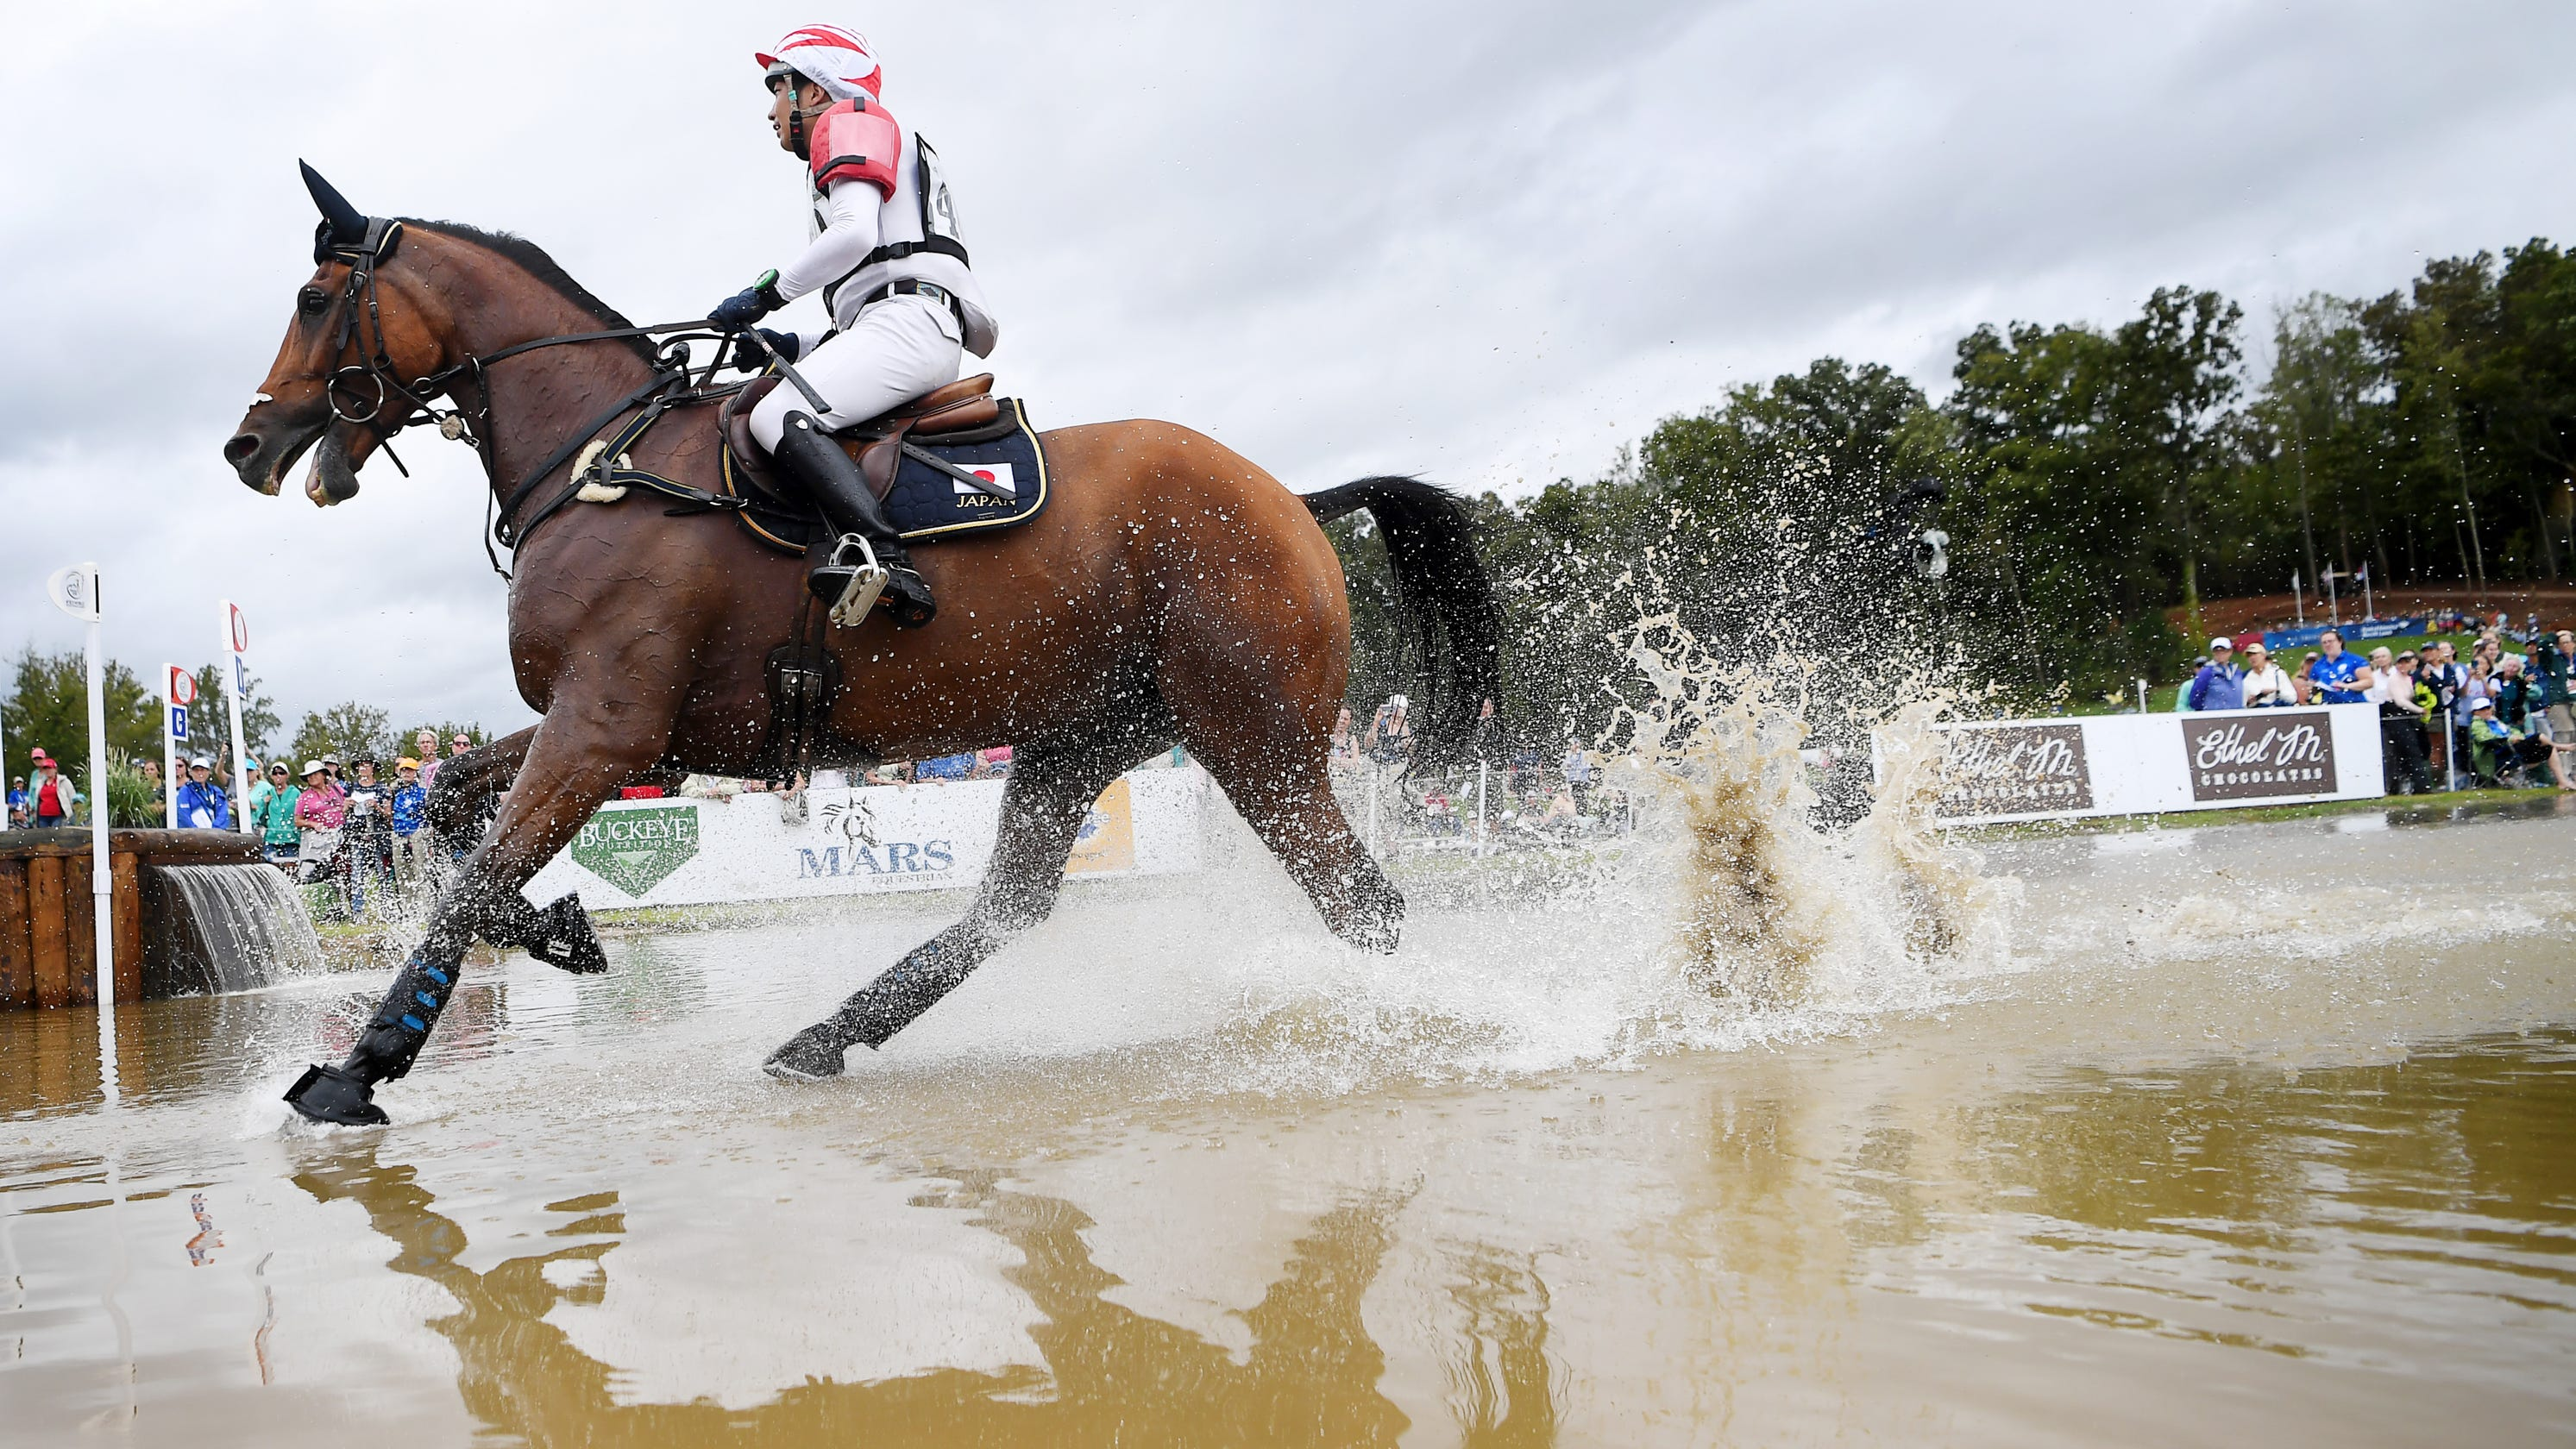 Aubepines Fei 1: FEI World Equestrian Games Cross Country